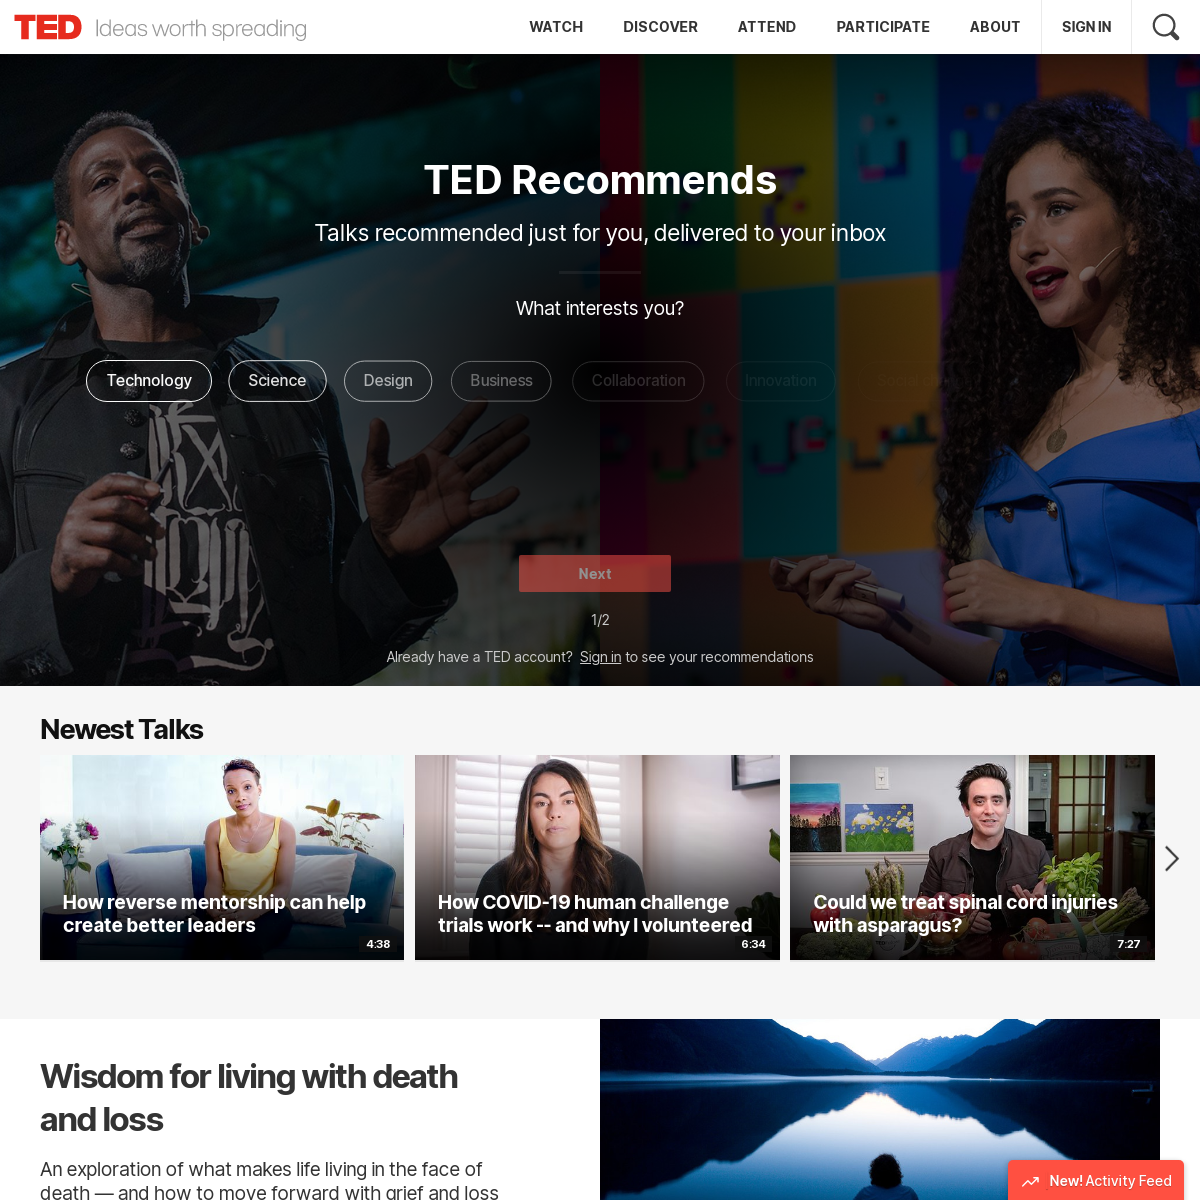 TED- Ideas worth spreading